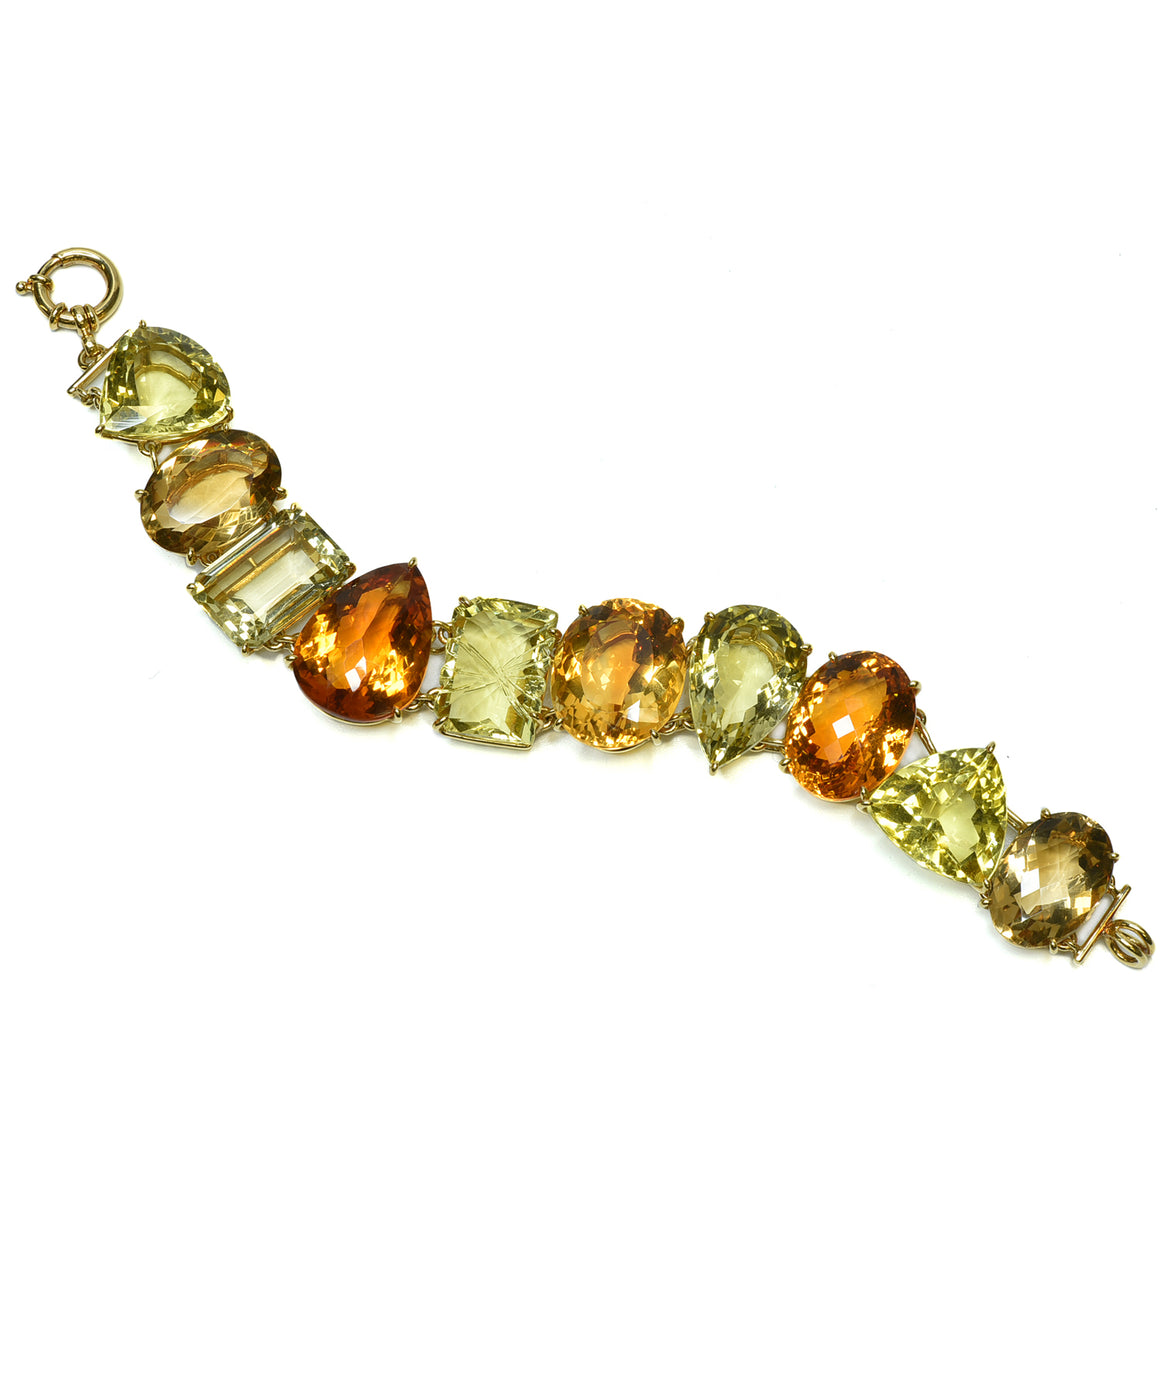 Citrine and lemon quartz bracelet